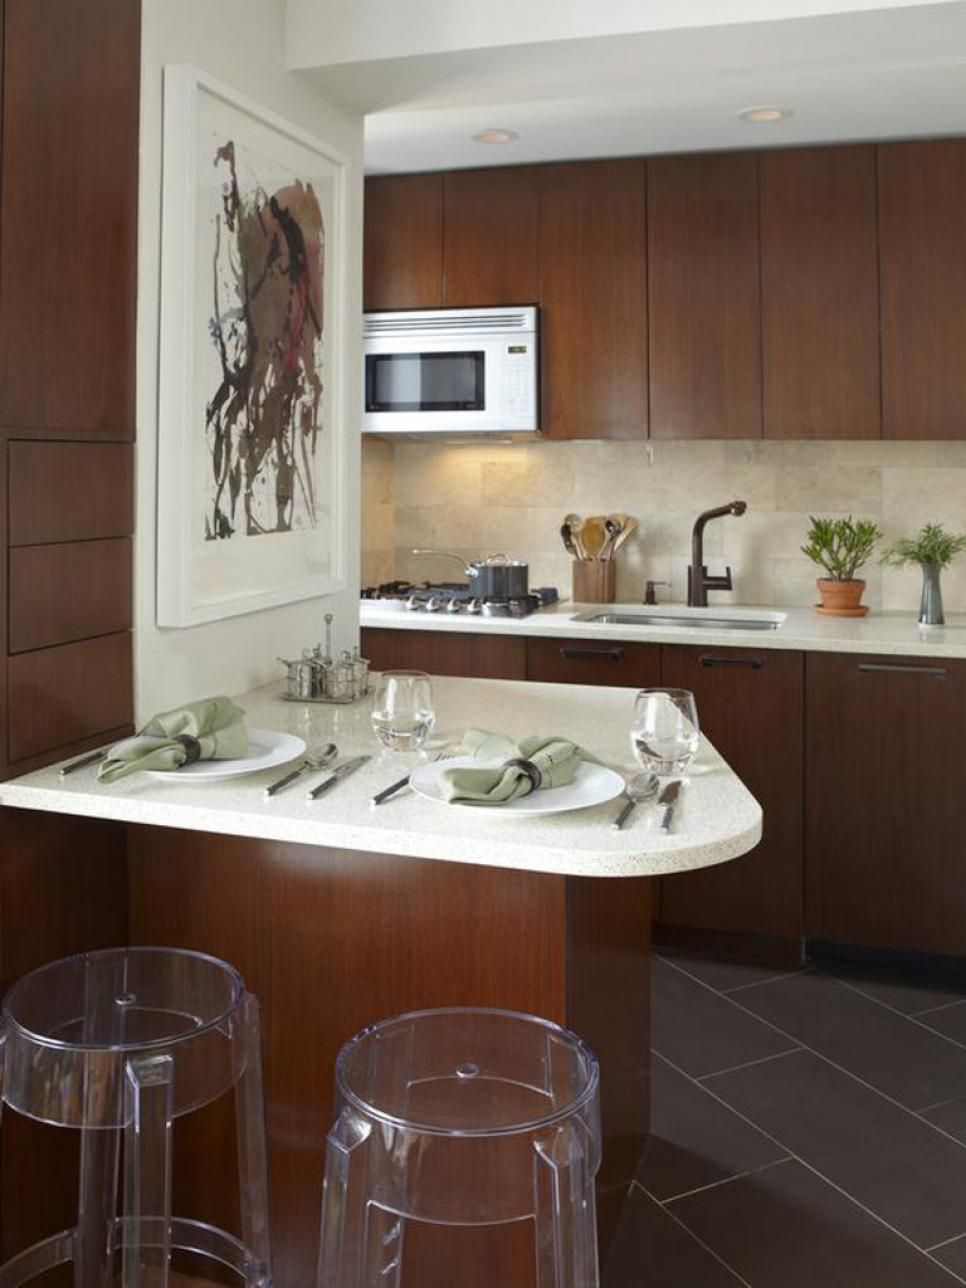 Smallkitchen Design Tips  Kitchen Design Kitchens And Diy Network Captivating Kitchen Design Simple Small Decorating Inspiration